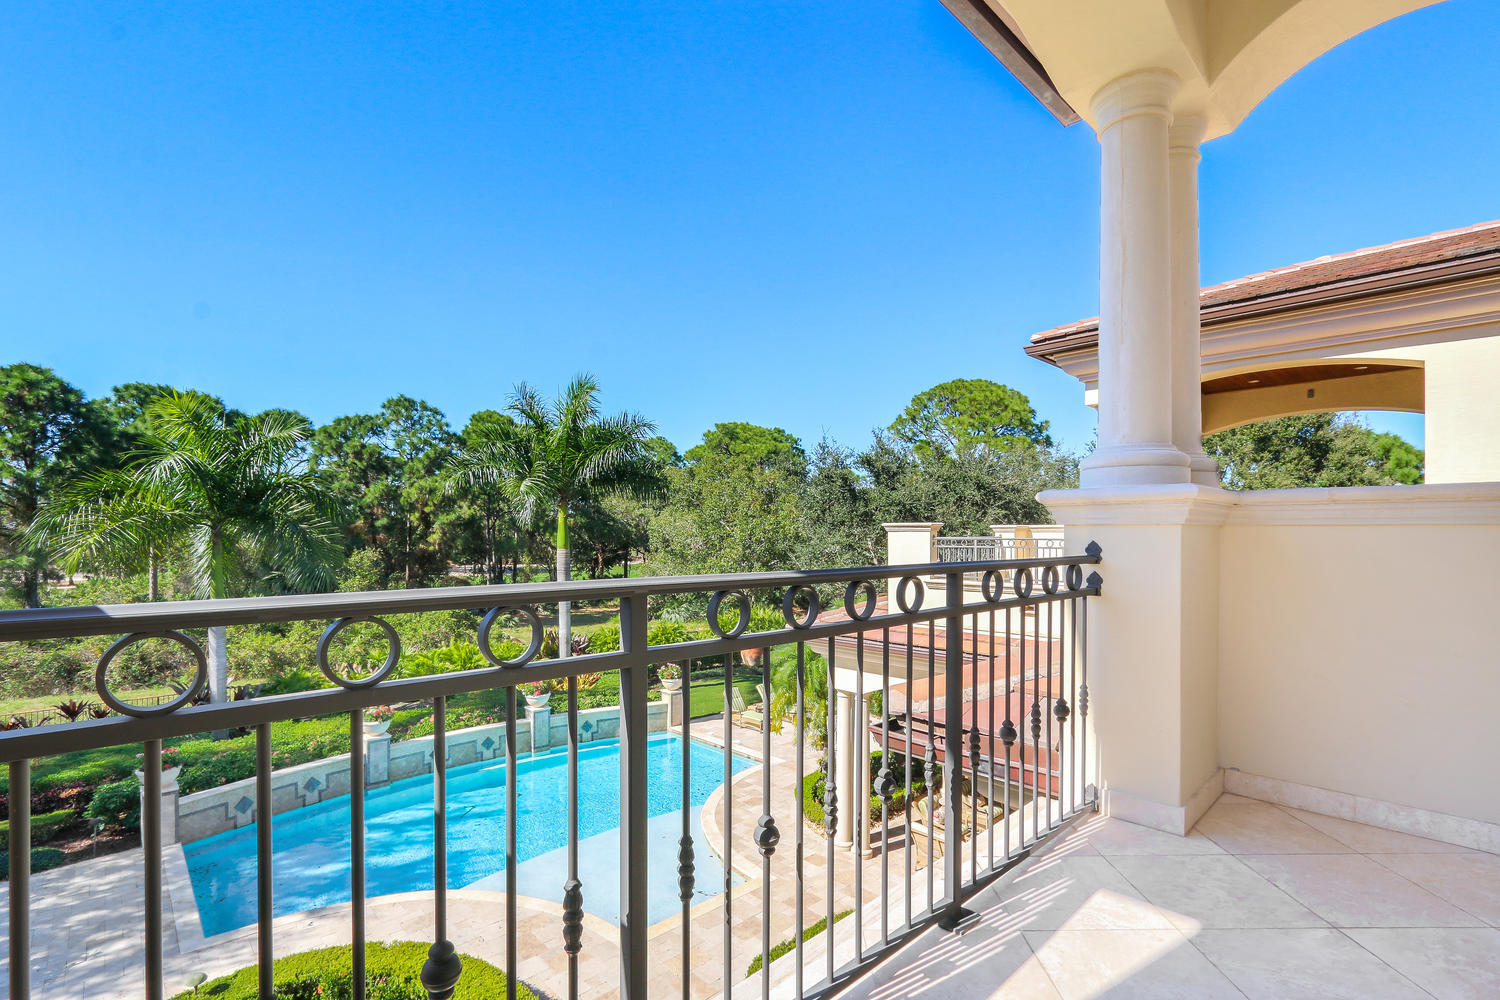 12242 Tillinghast Circle, Palm Beach Gardens, Florida 33418, 5 Bedrooms Bedrooms, ,5.2 BathroomsBathrooms,A,Single family,Tillinghast,RX-10509291